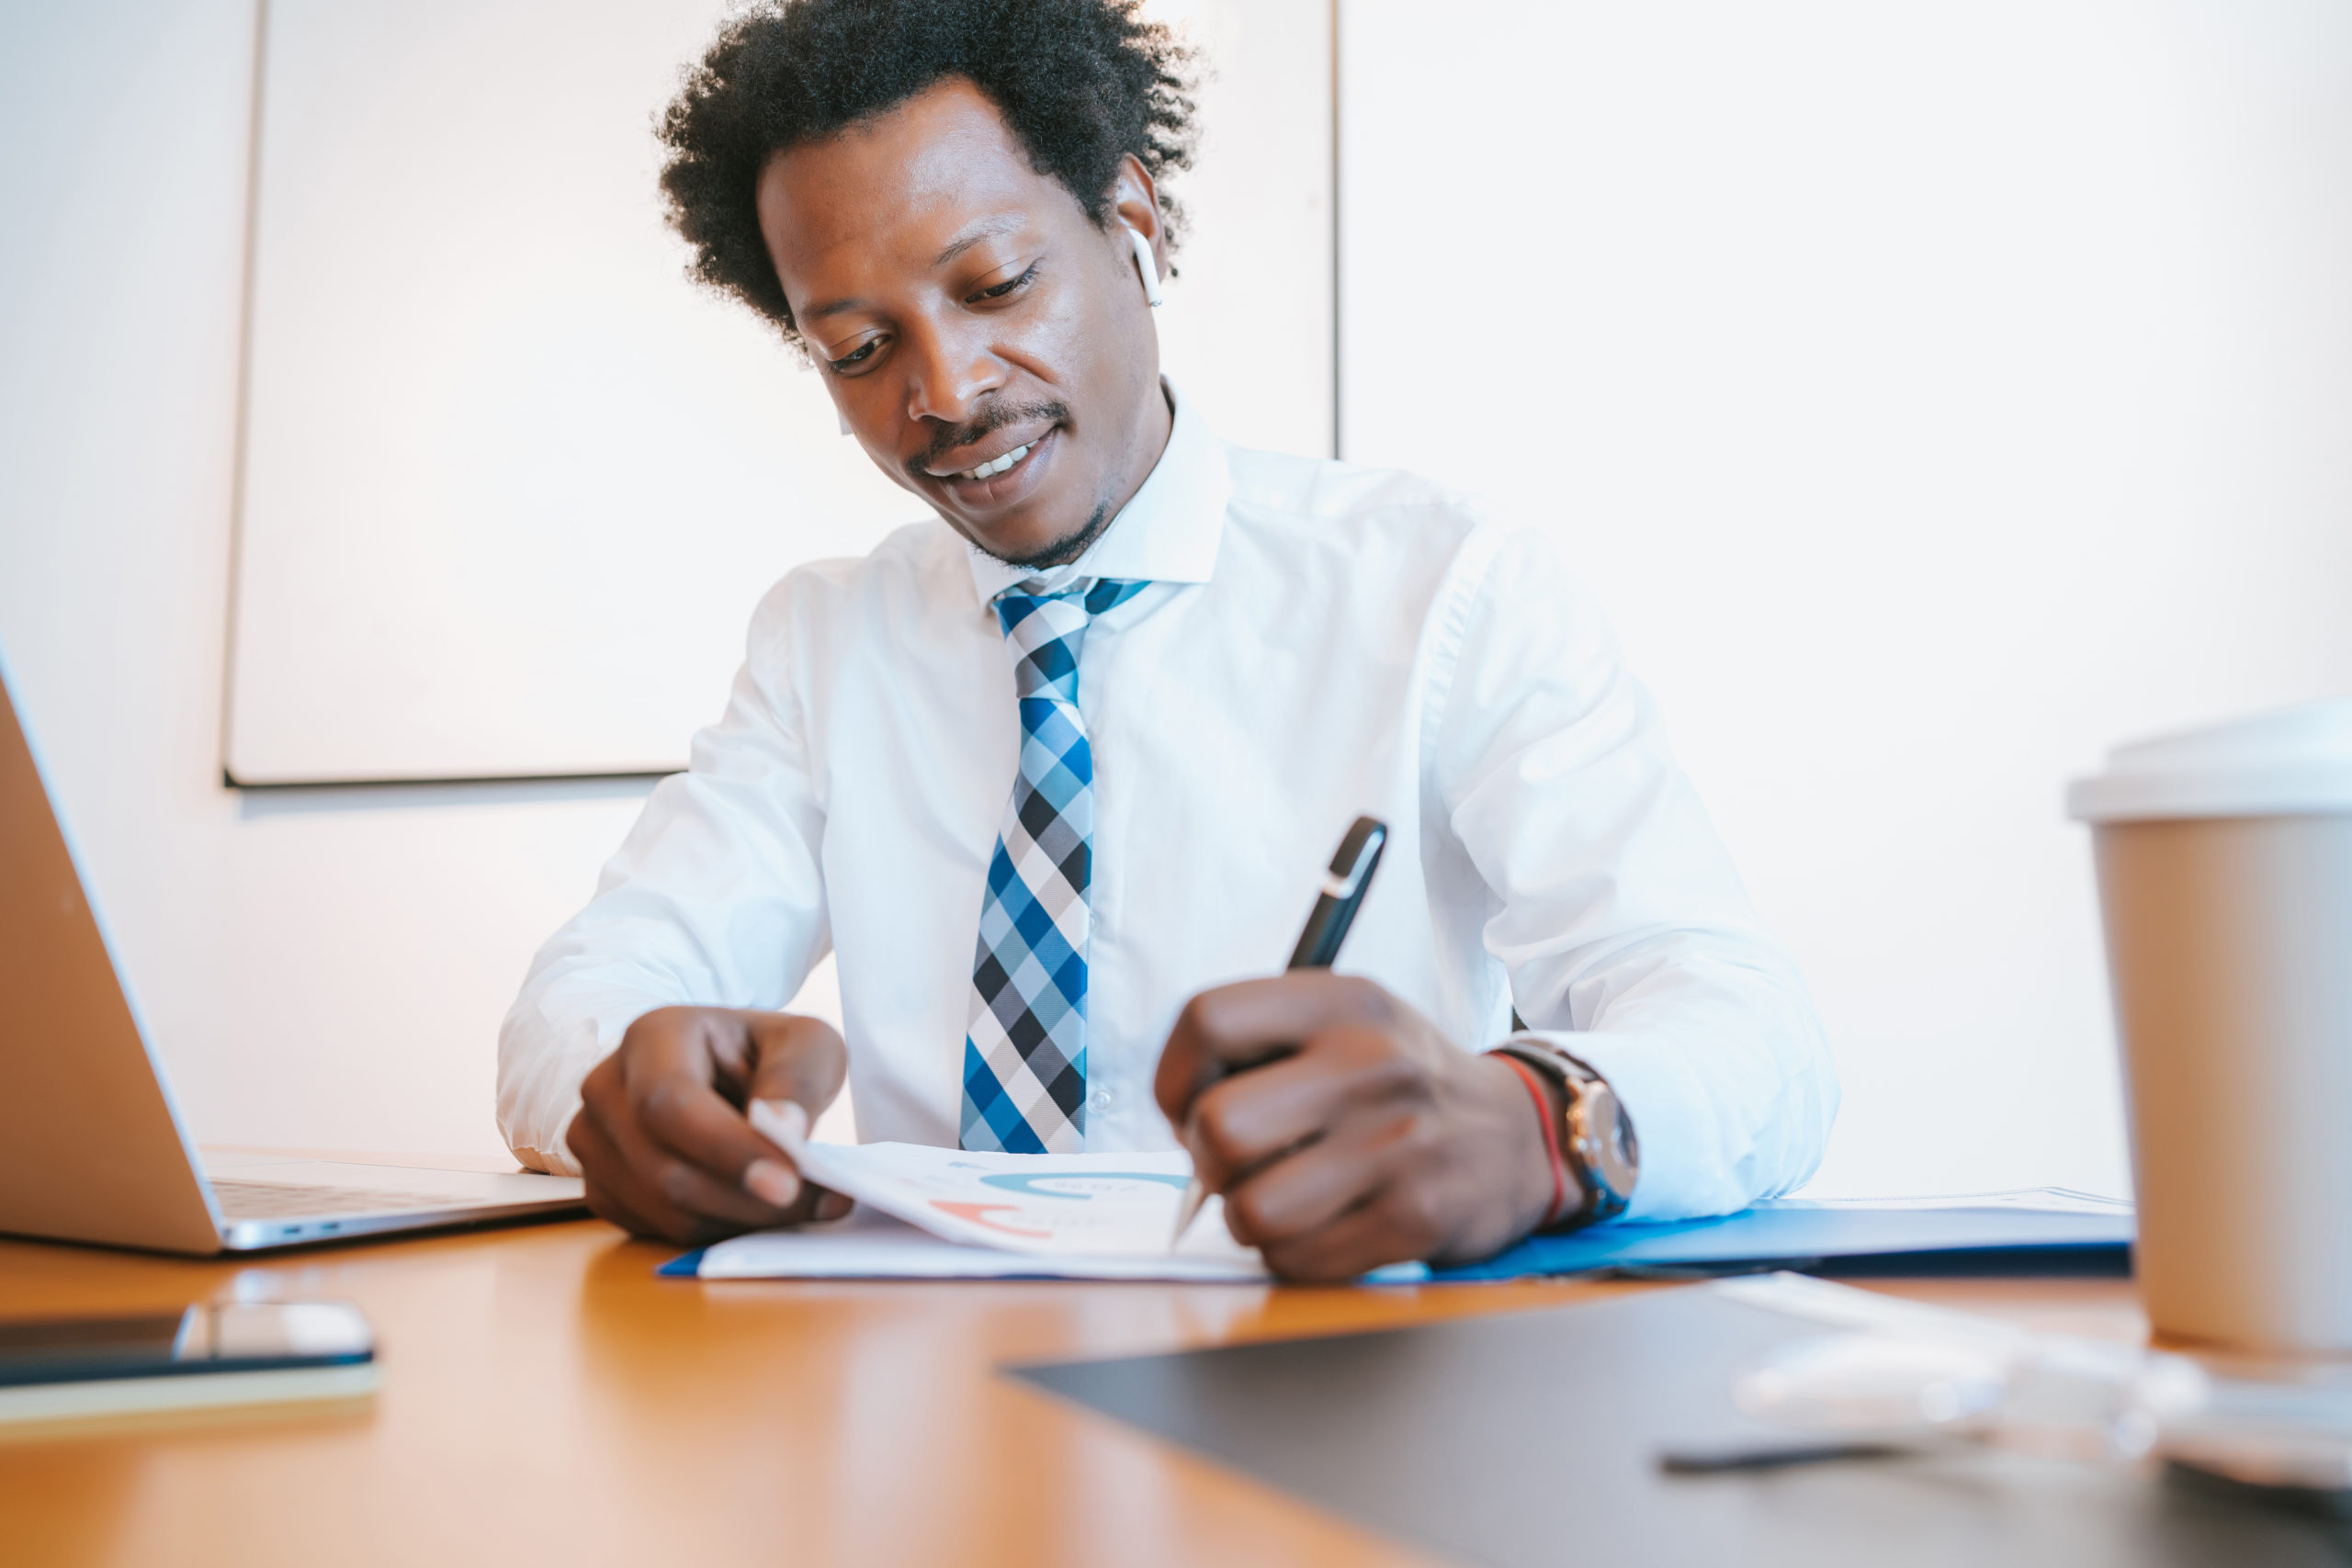 Professional businessman working at his modern office. Business and success concept.